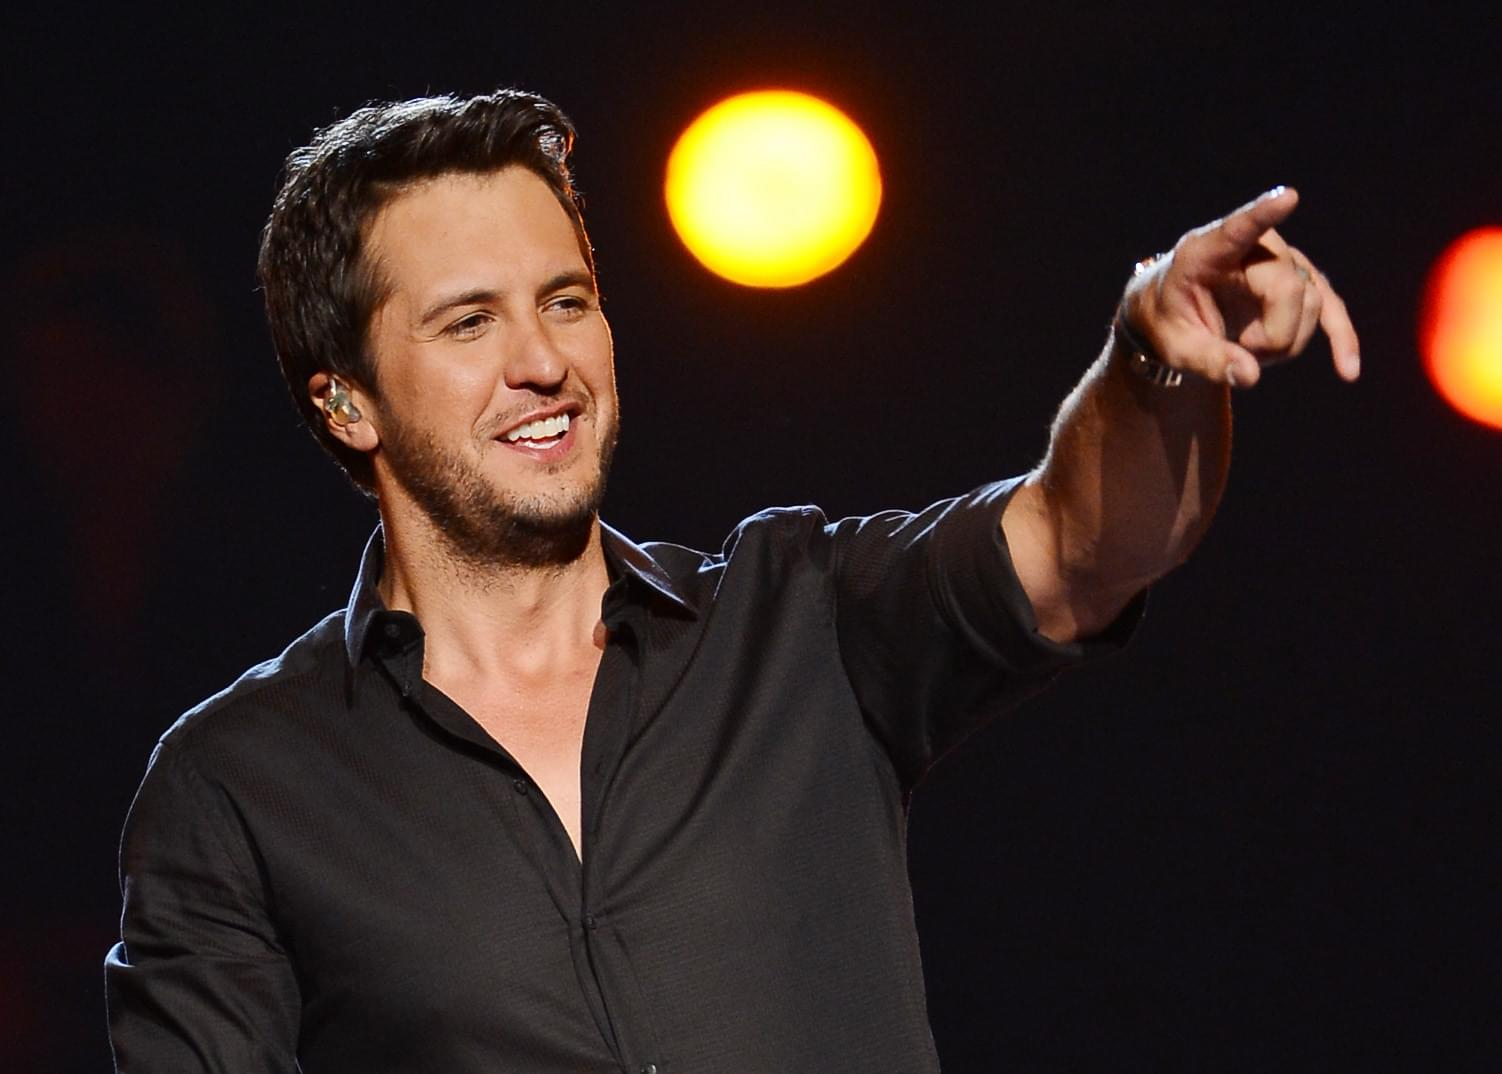 Luke Bryan Gives American Idol Contestant The Boots Off His Feet